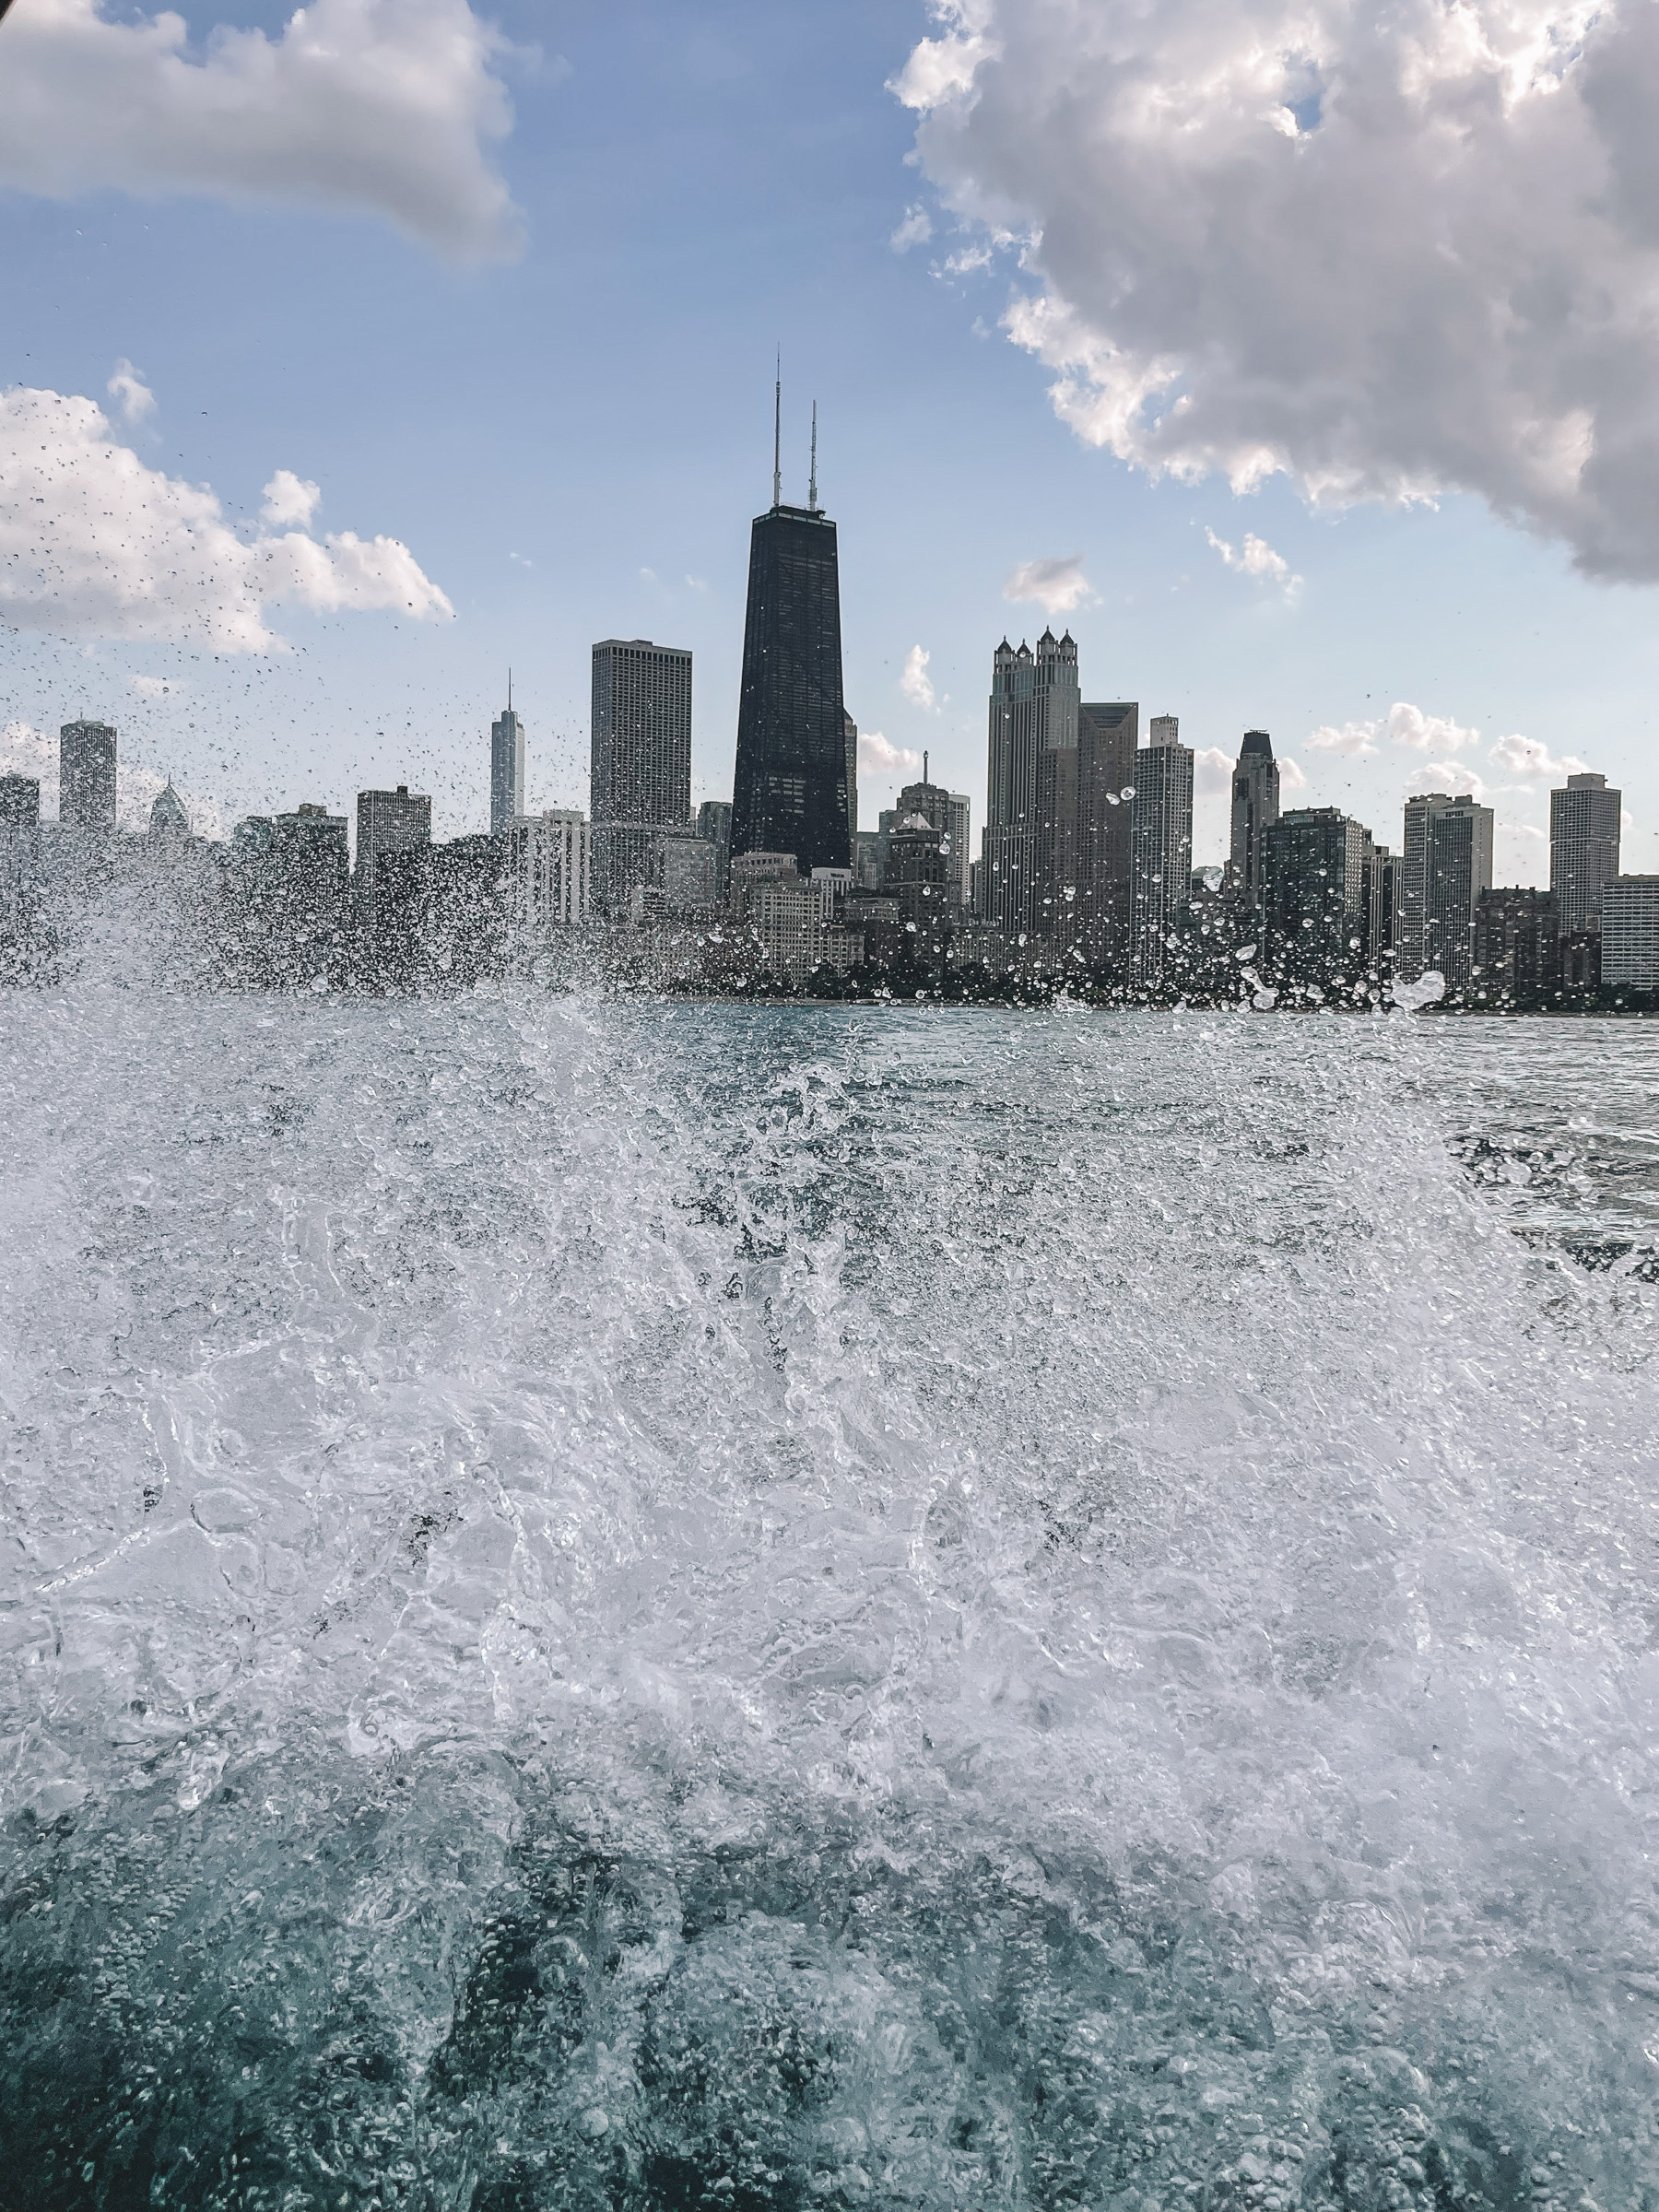 Boating in Chicago